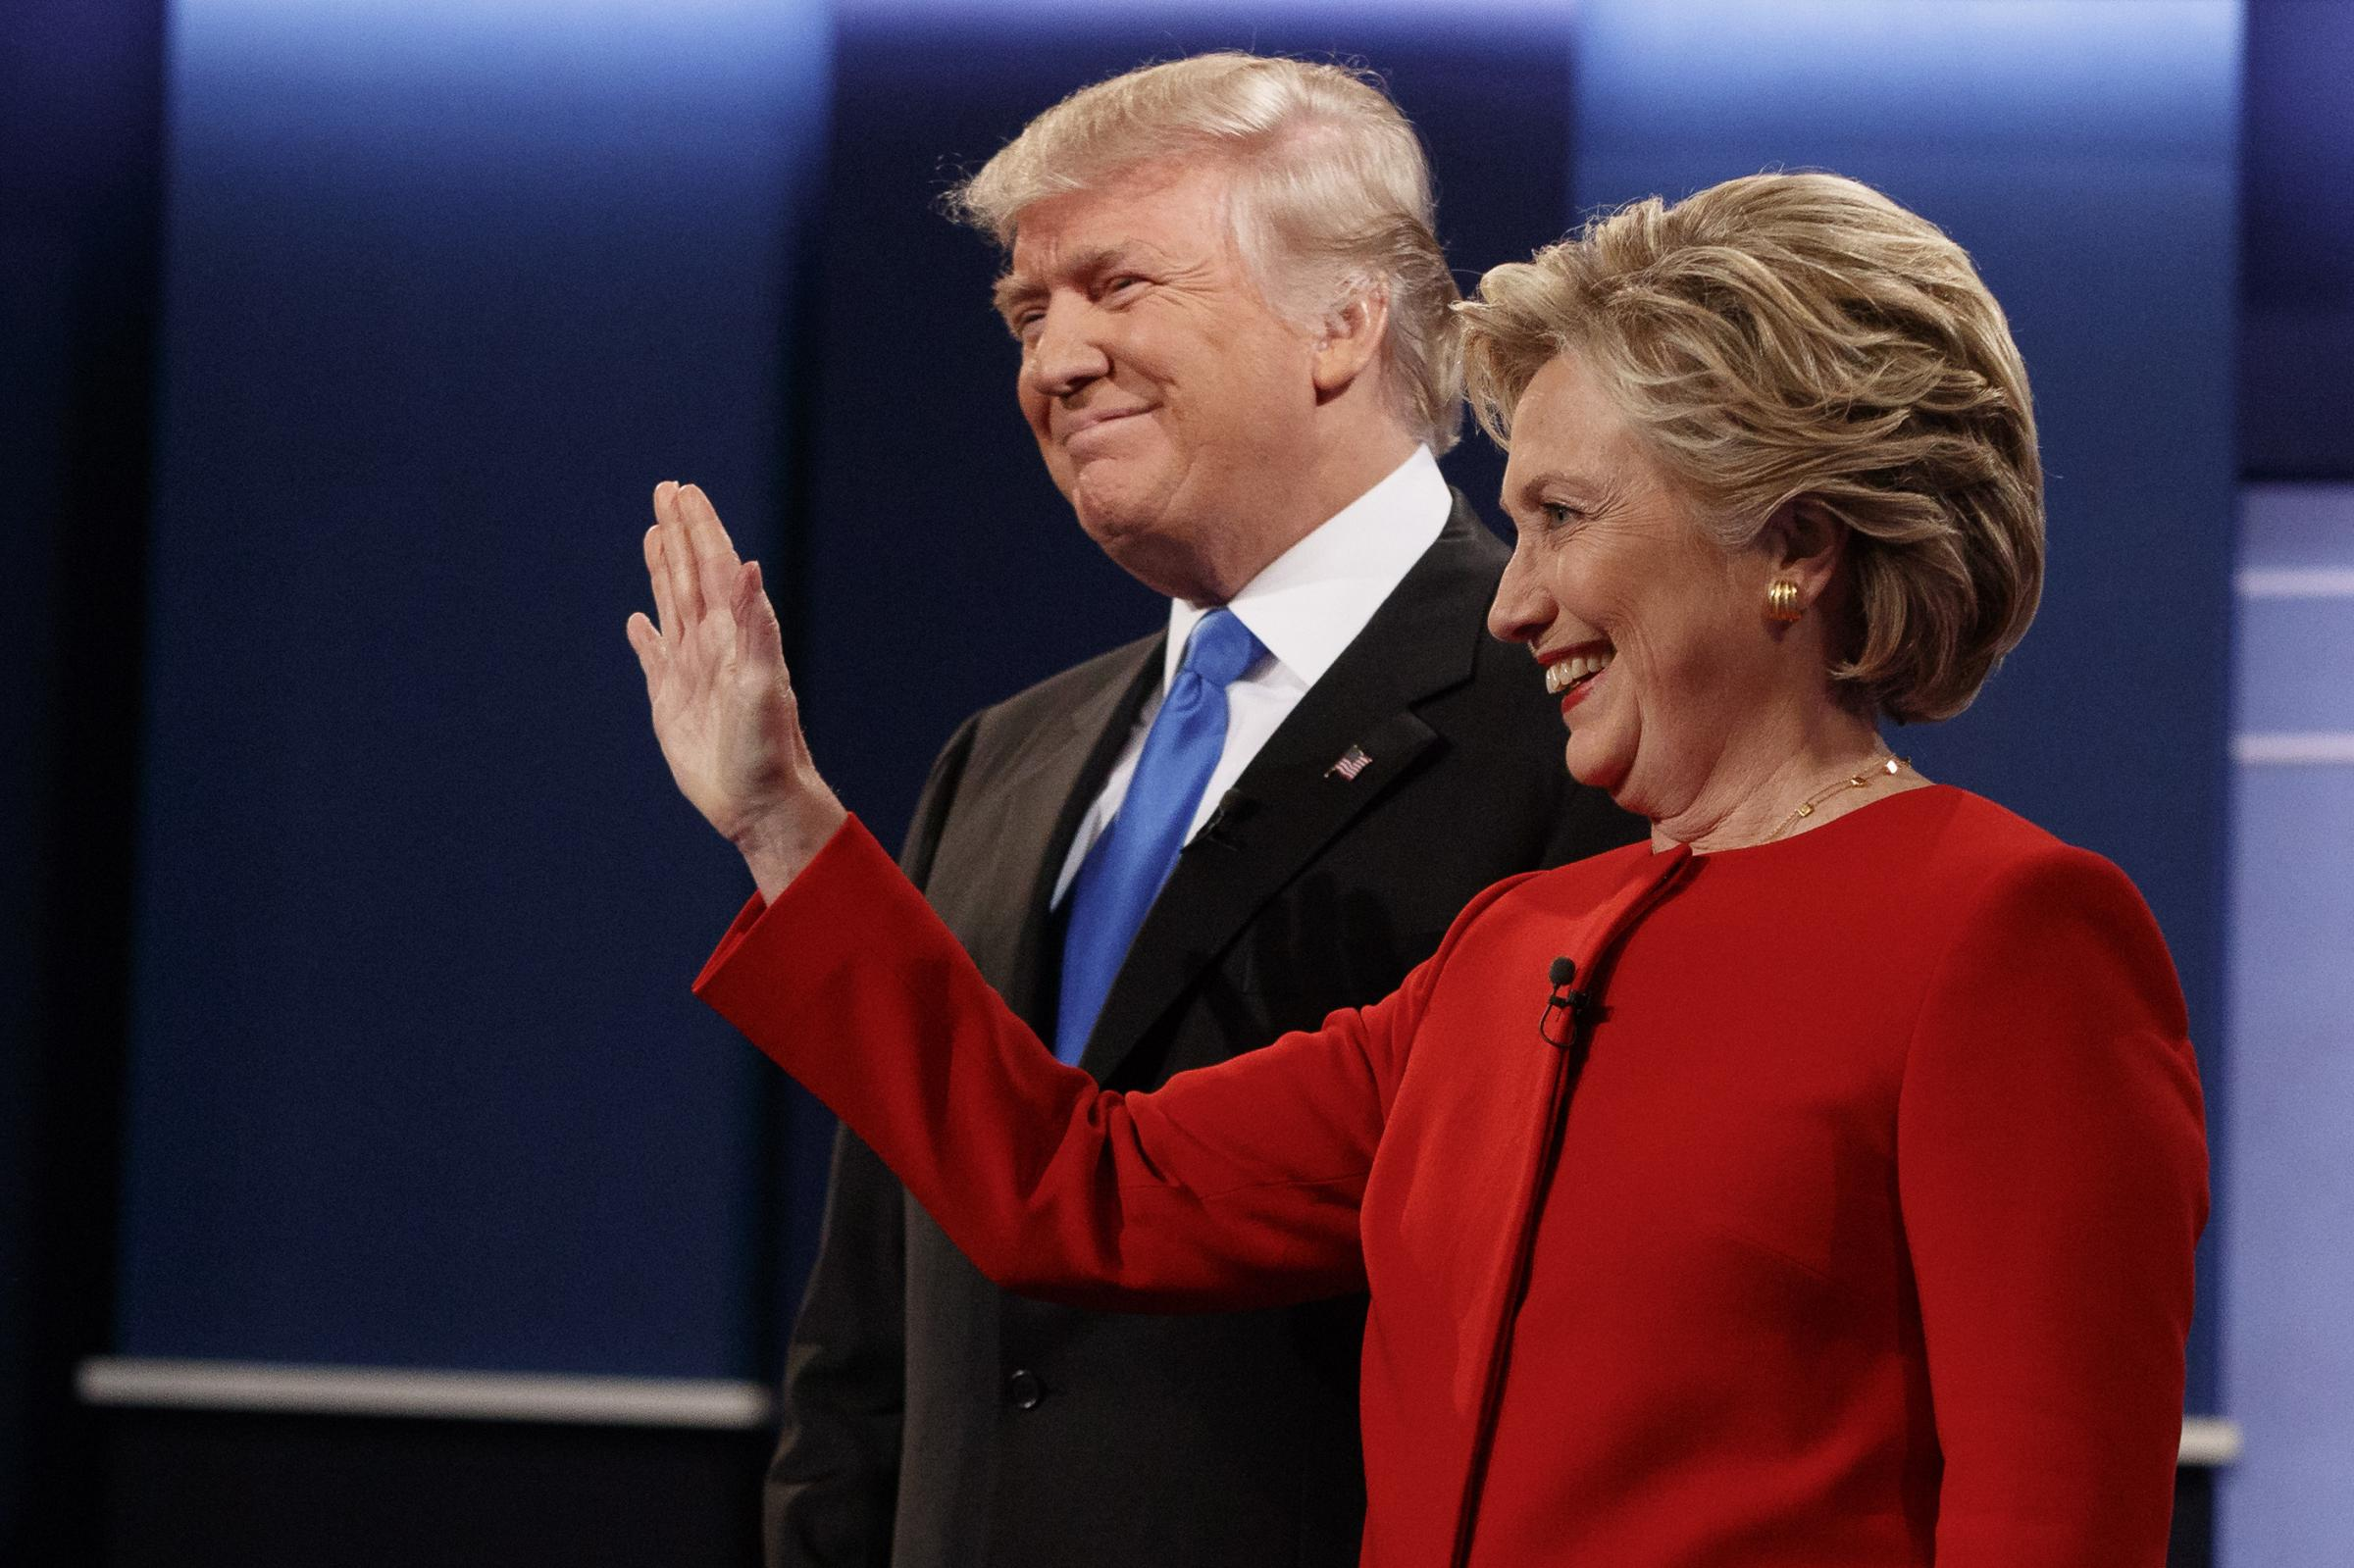 Clinton takes a swing at Trump's debate performance